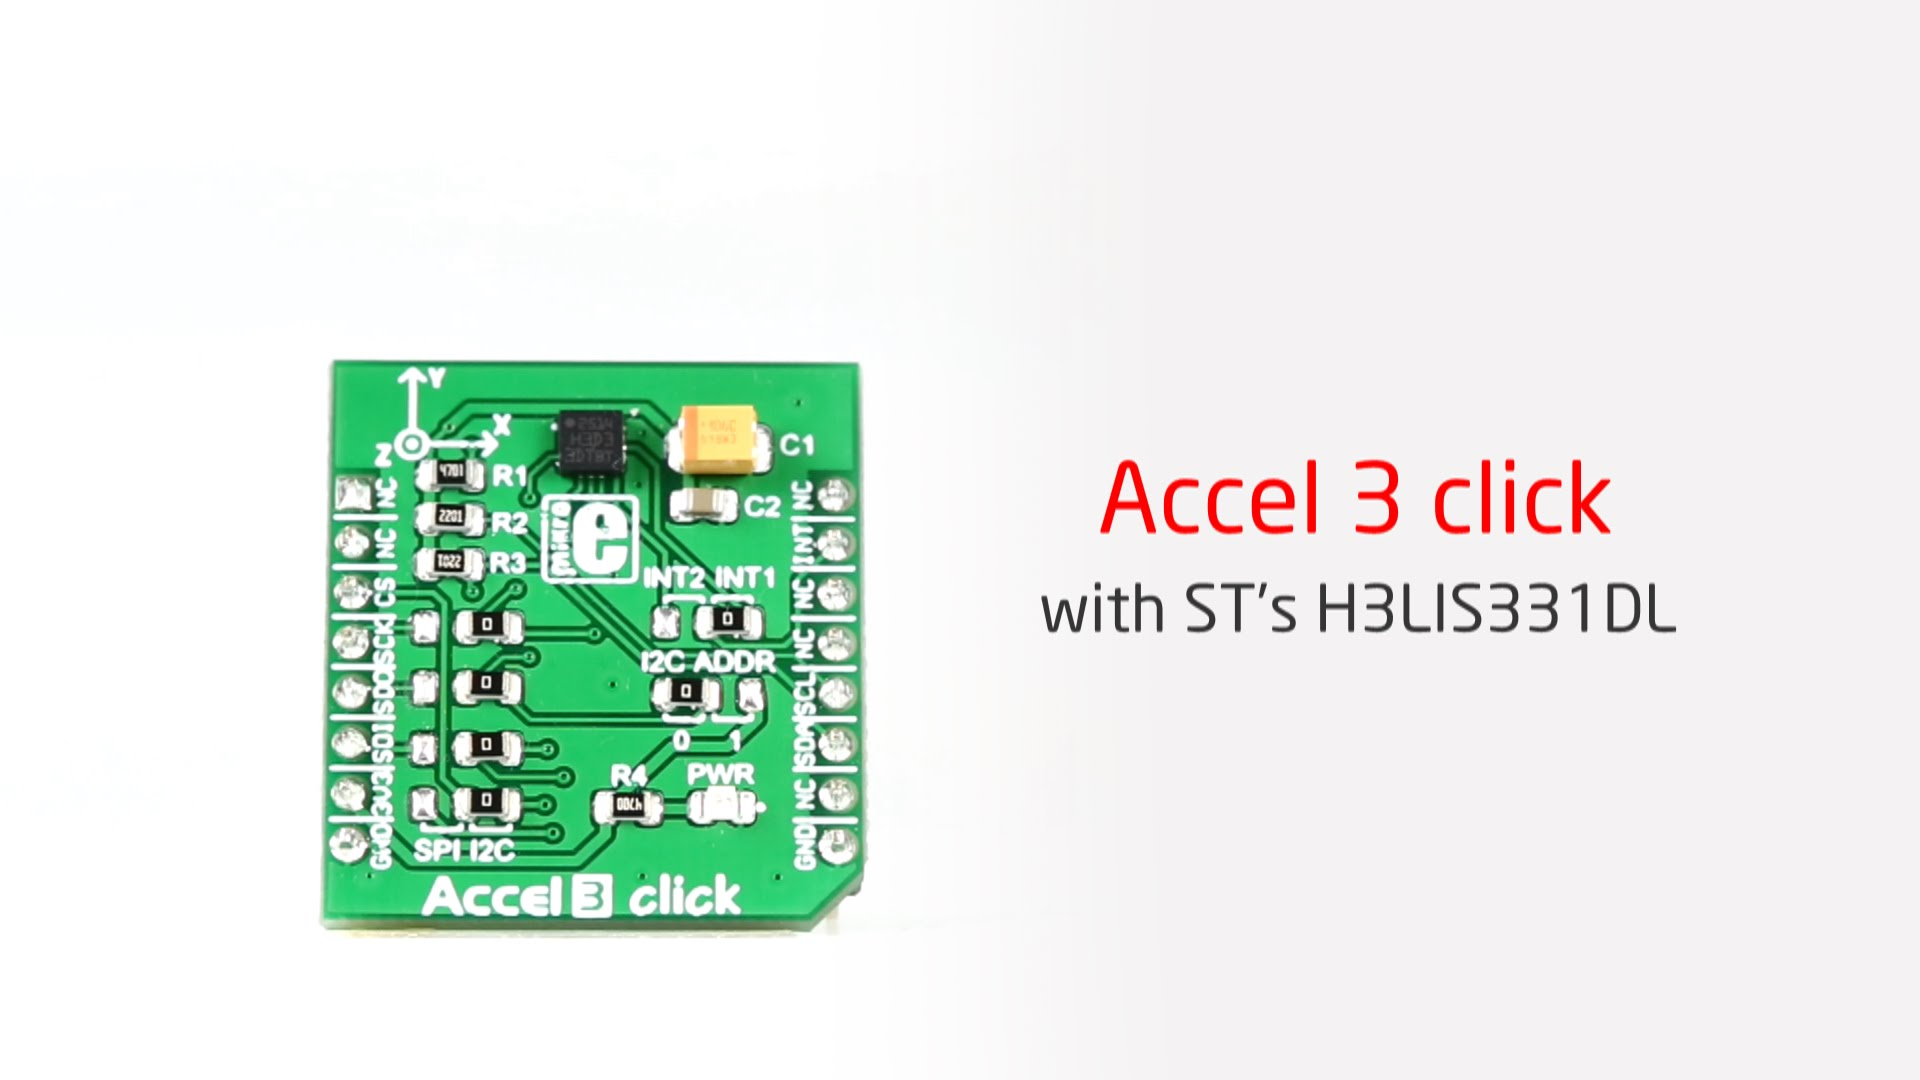 Accel 3 click released (high-g vs low-g accelerometers)